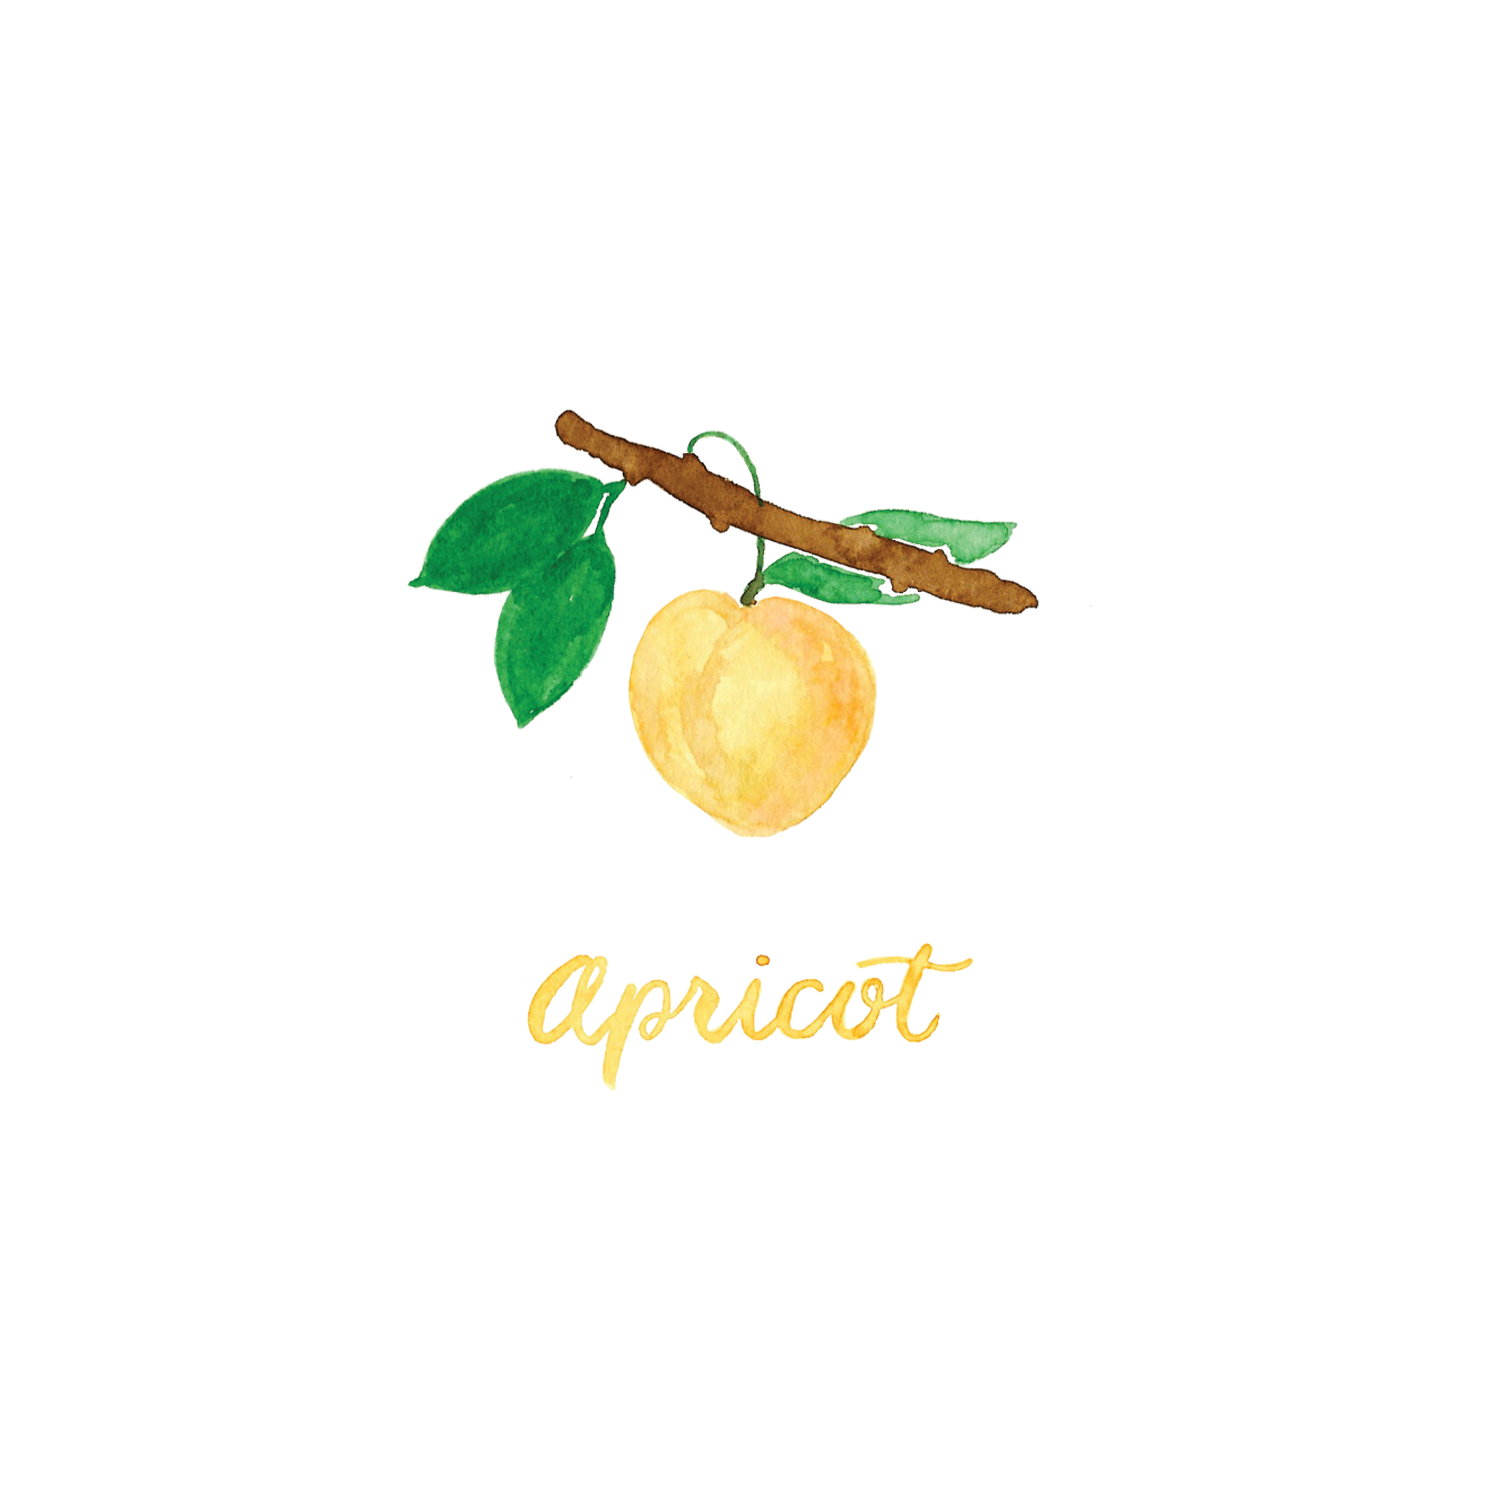 Watercolor Apricot Illustration and Lettering by Amanda Gomes • delightedco.com